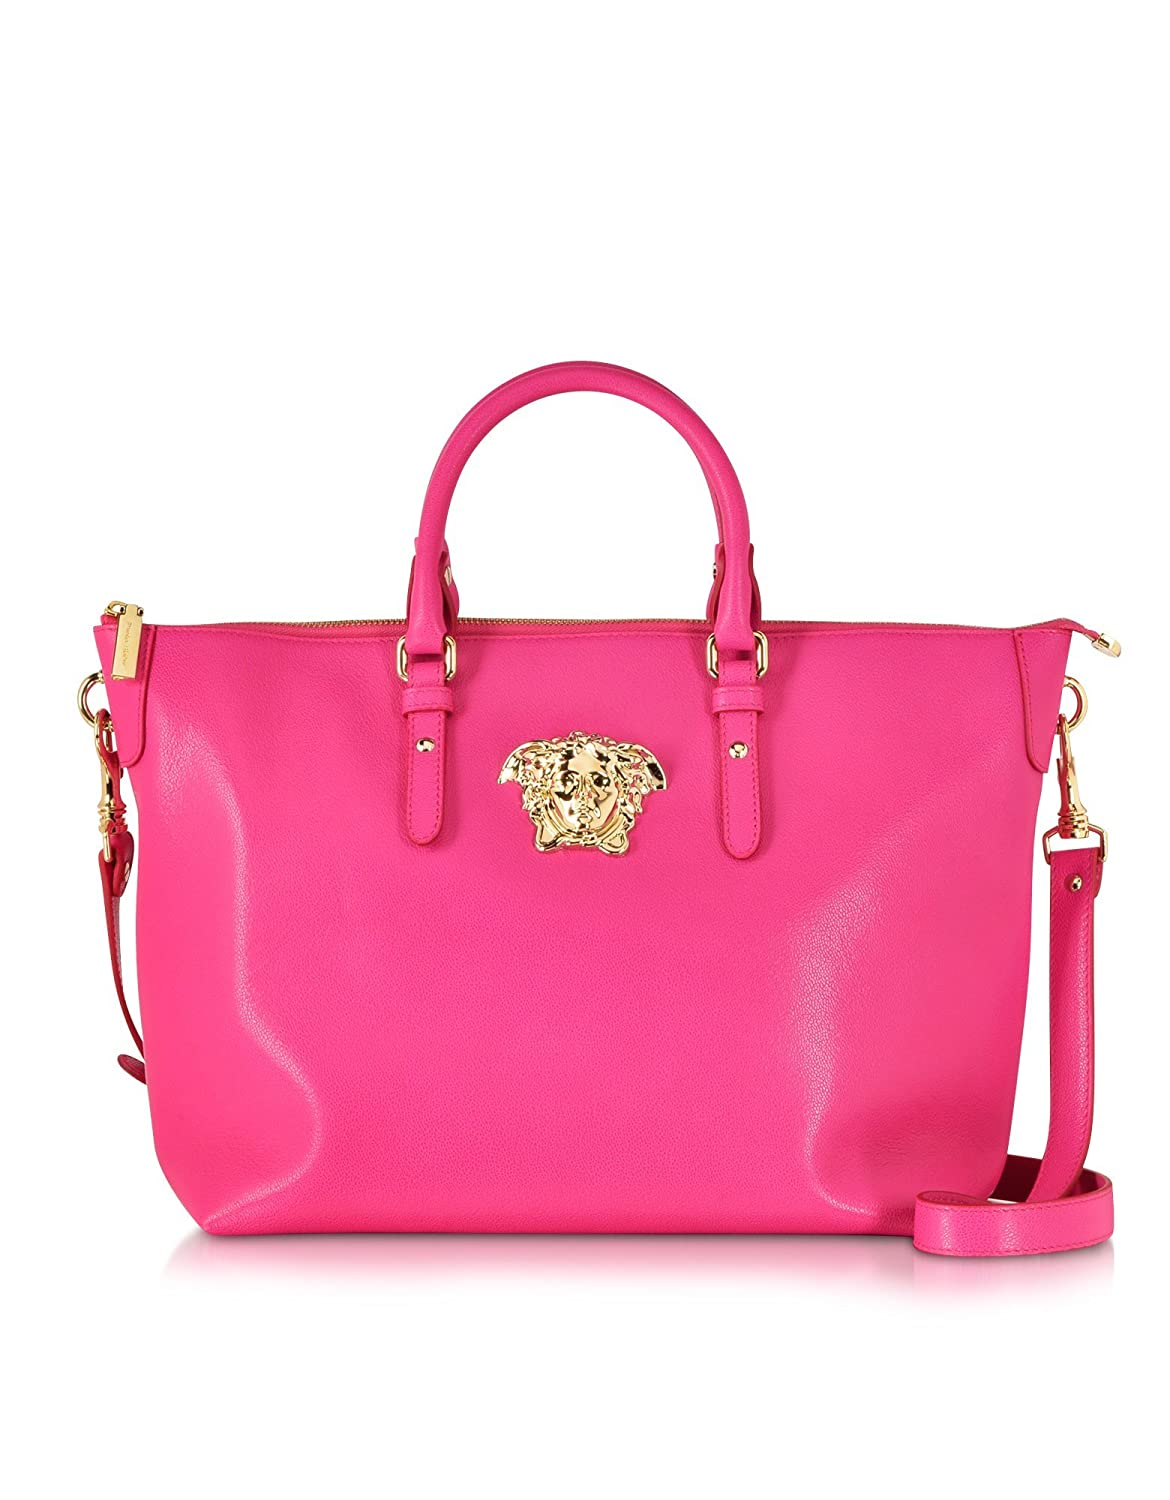 c1c1280004 Versace Designer Handbags Palazzo Small Marilyn Pink Leather Tote Bag   Amazon.co.uk  Shoes   Bags